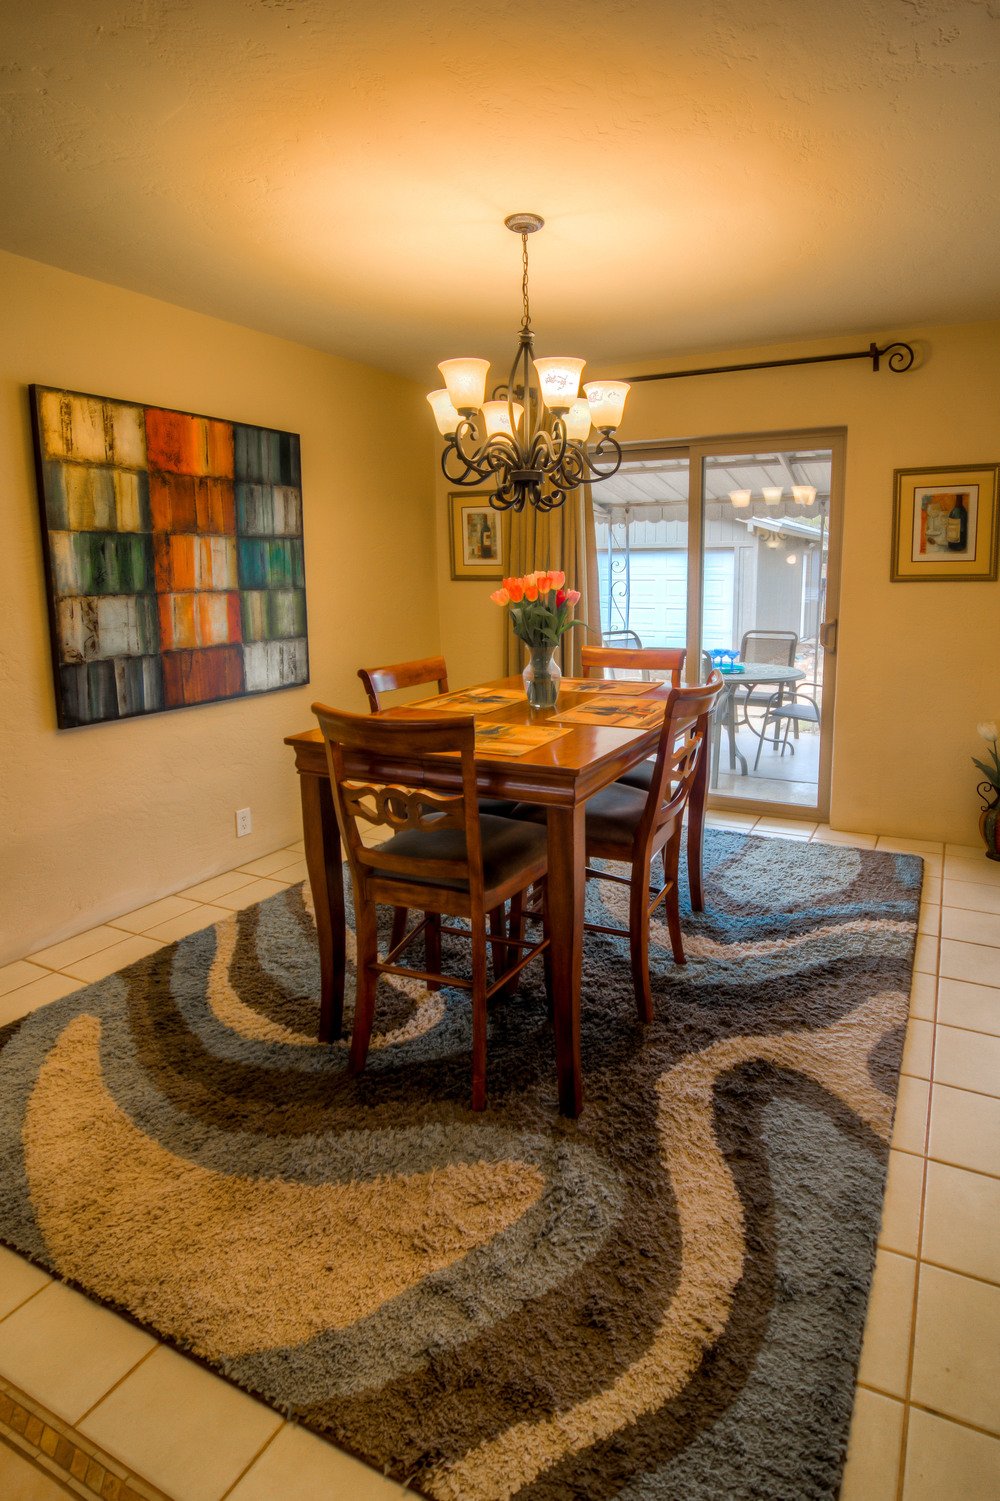 15 Dining Room photo b.jpg